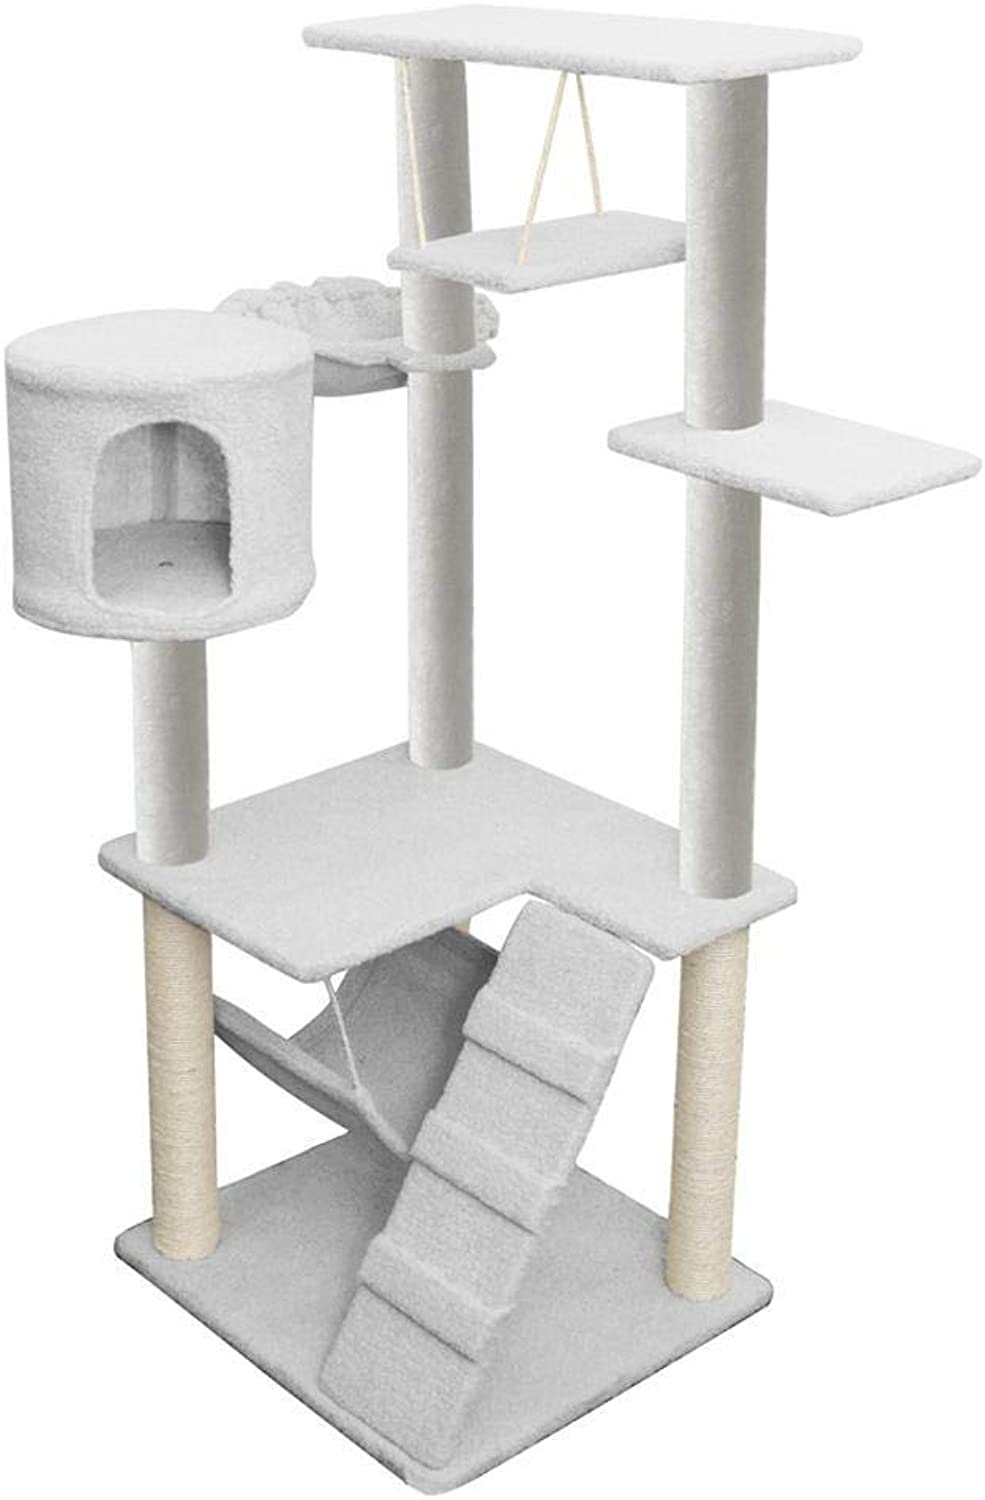 Aoligei Cat Play Towers & Trees Station Cat furniture Large cat tree Pet supplies Plush 55  50  137cm